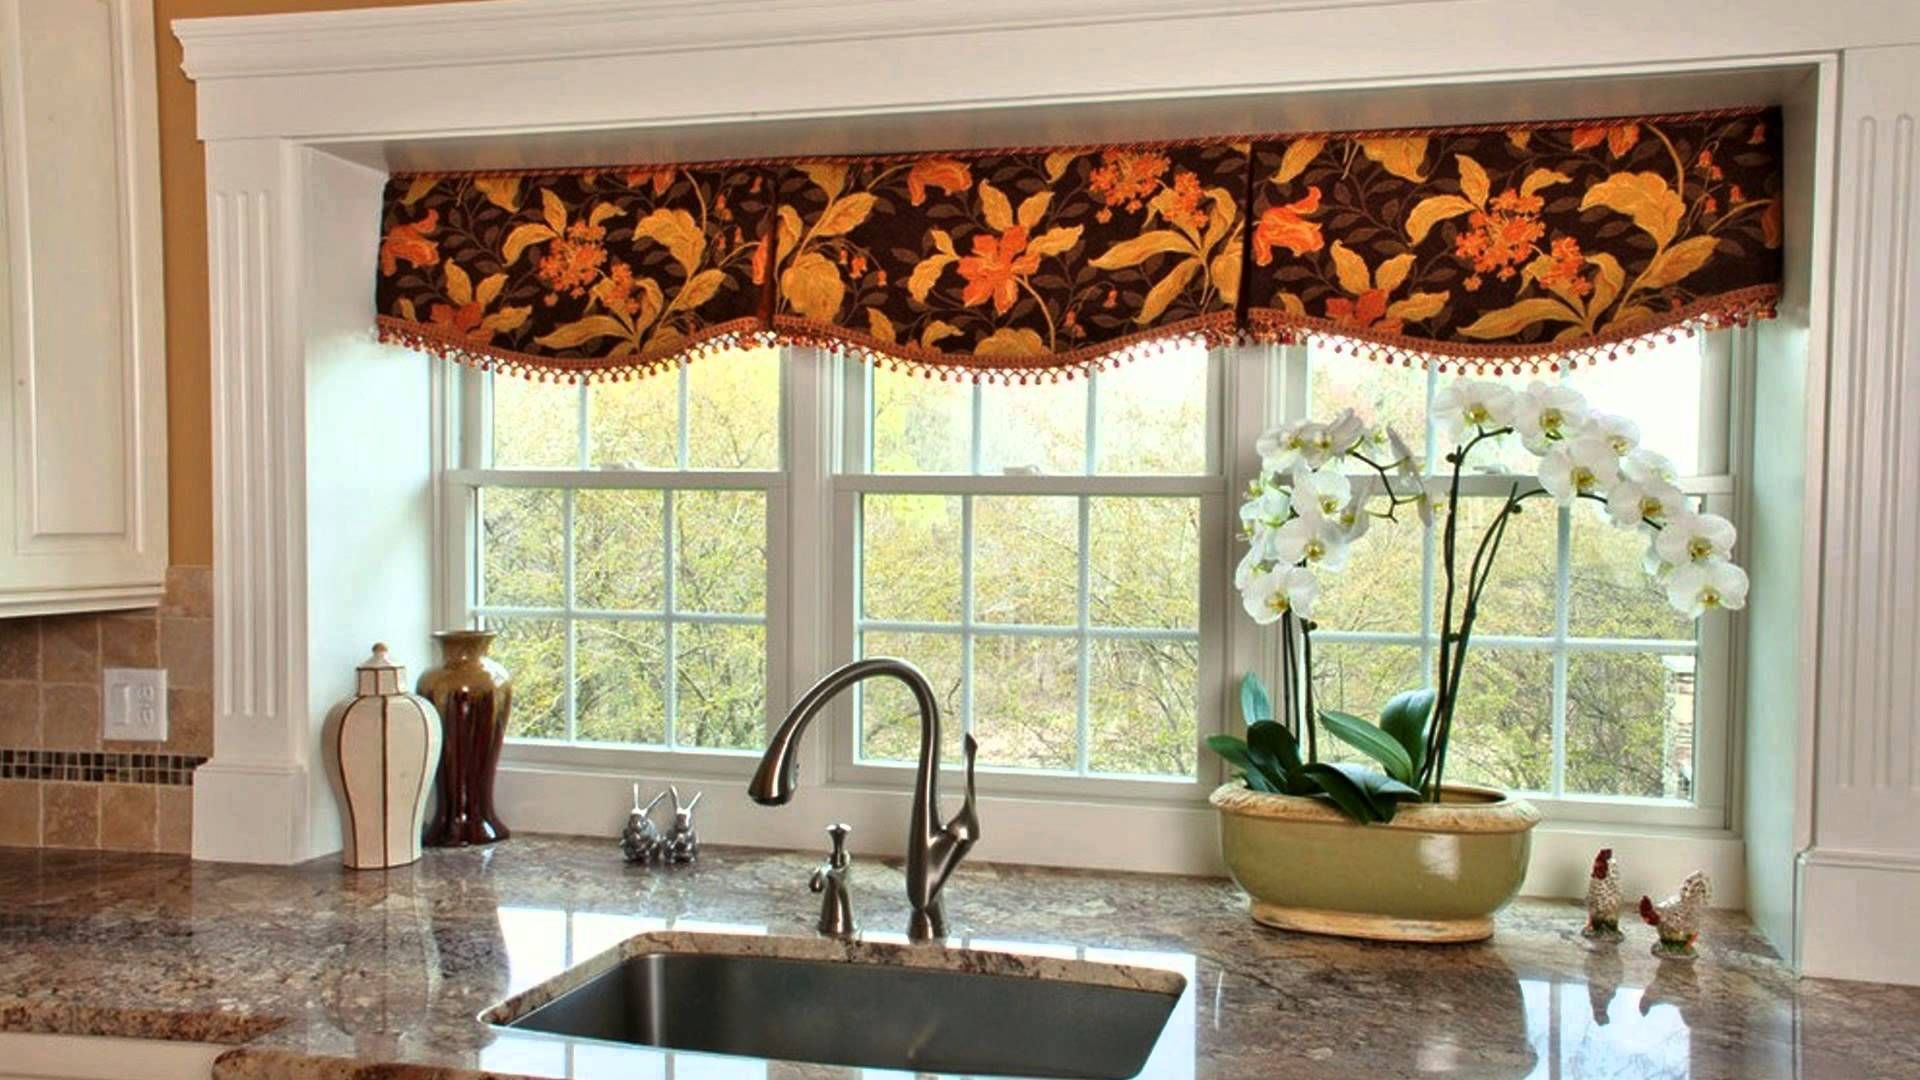 kitchen valance design ideas 17 best images about windowshower curtain styles on pinterest - Valance Design Ideas